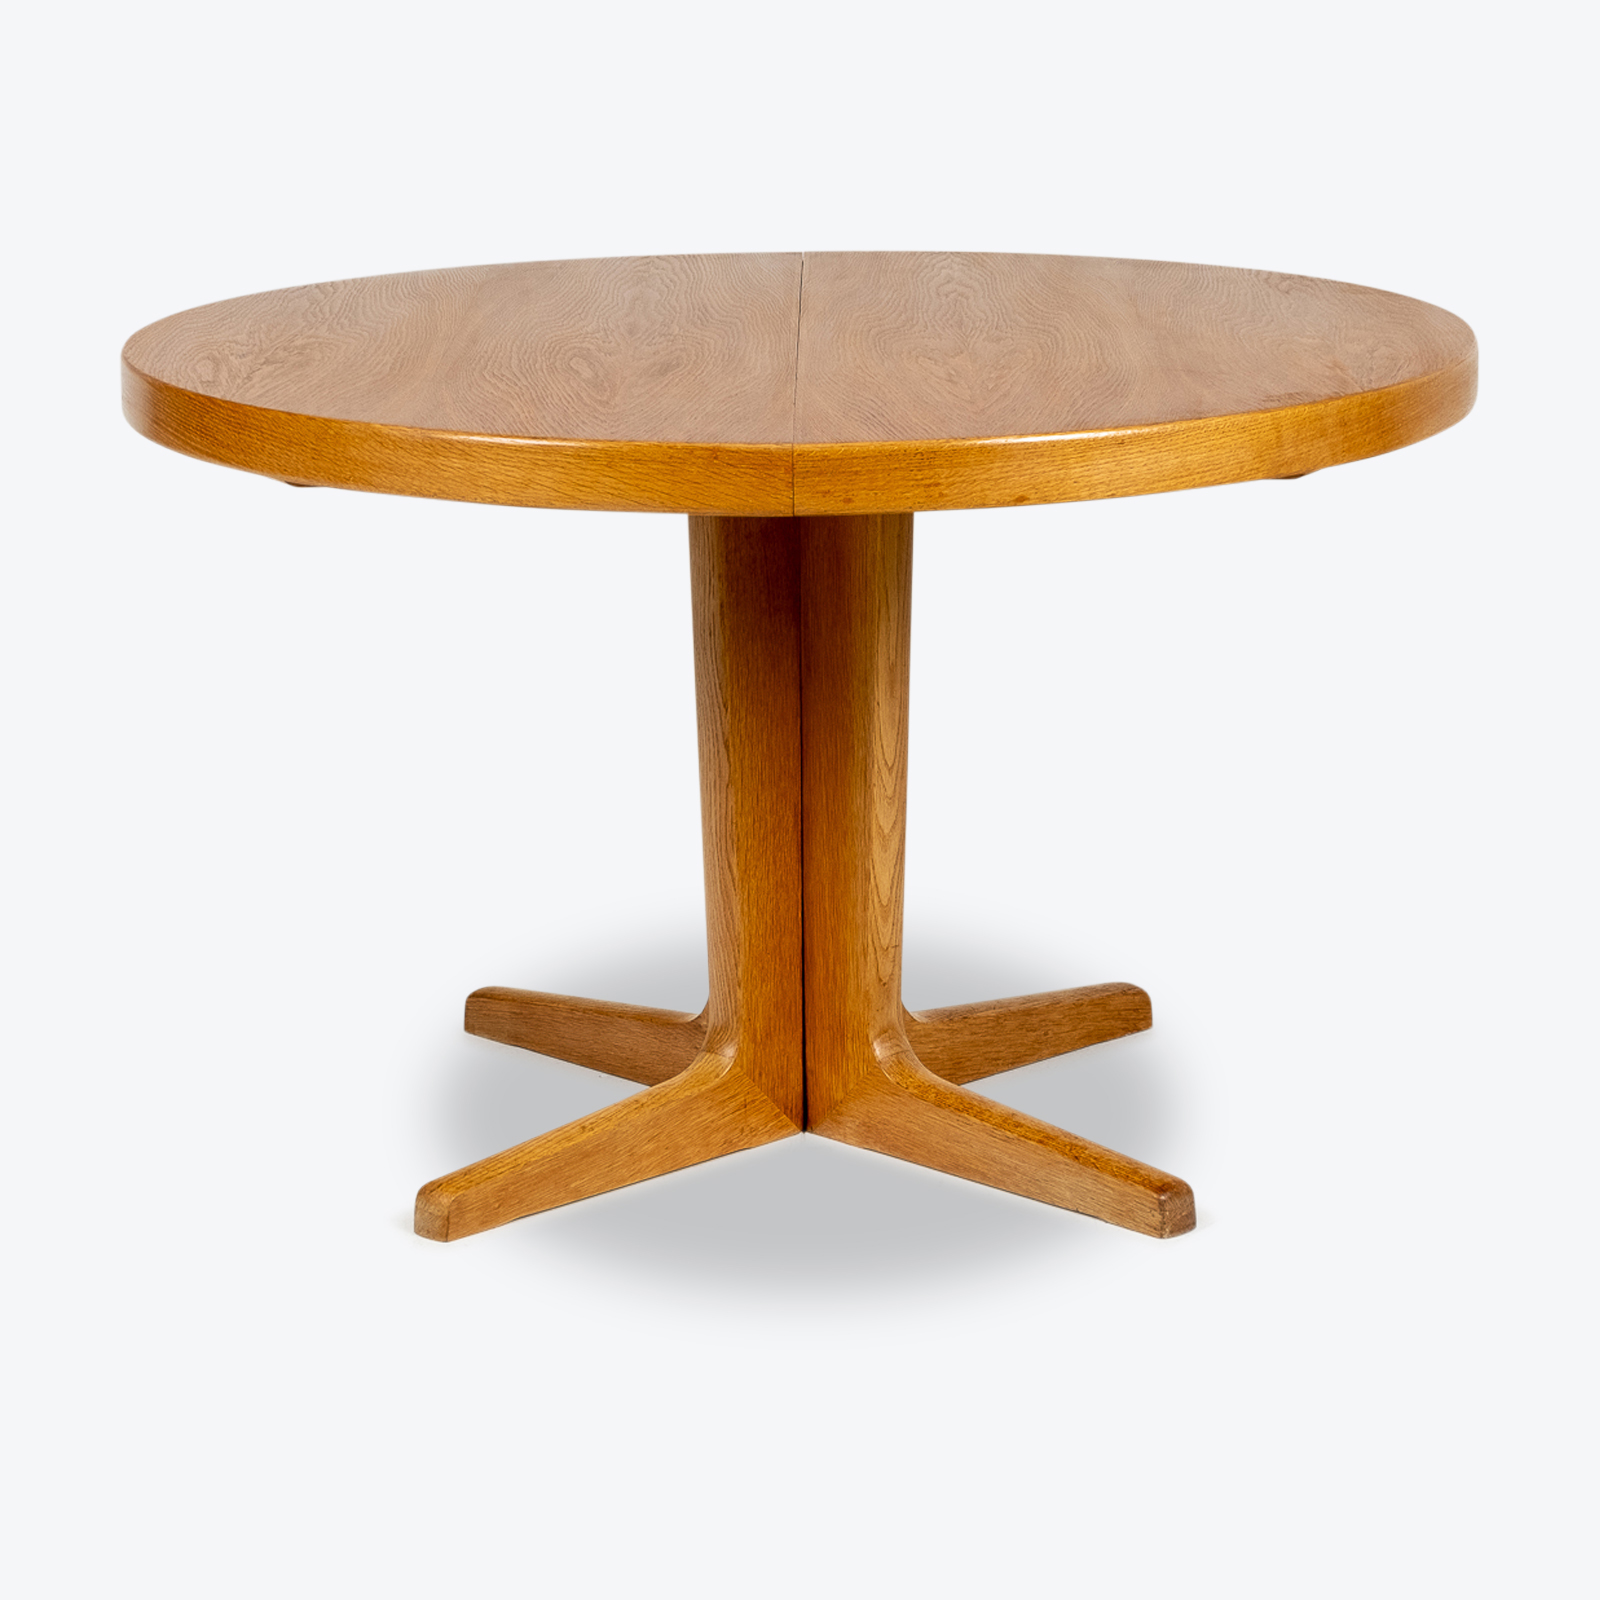 Round Pedestal Dining Table In Oak With Three Extension Leaves, 1960s, Denmark Hero